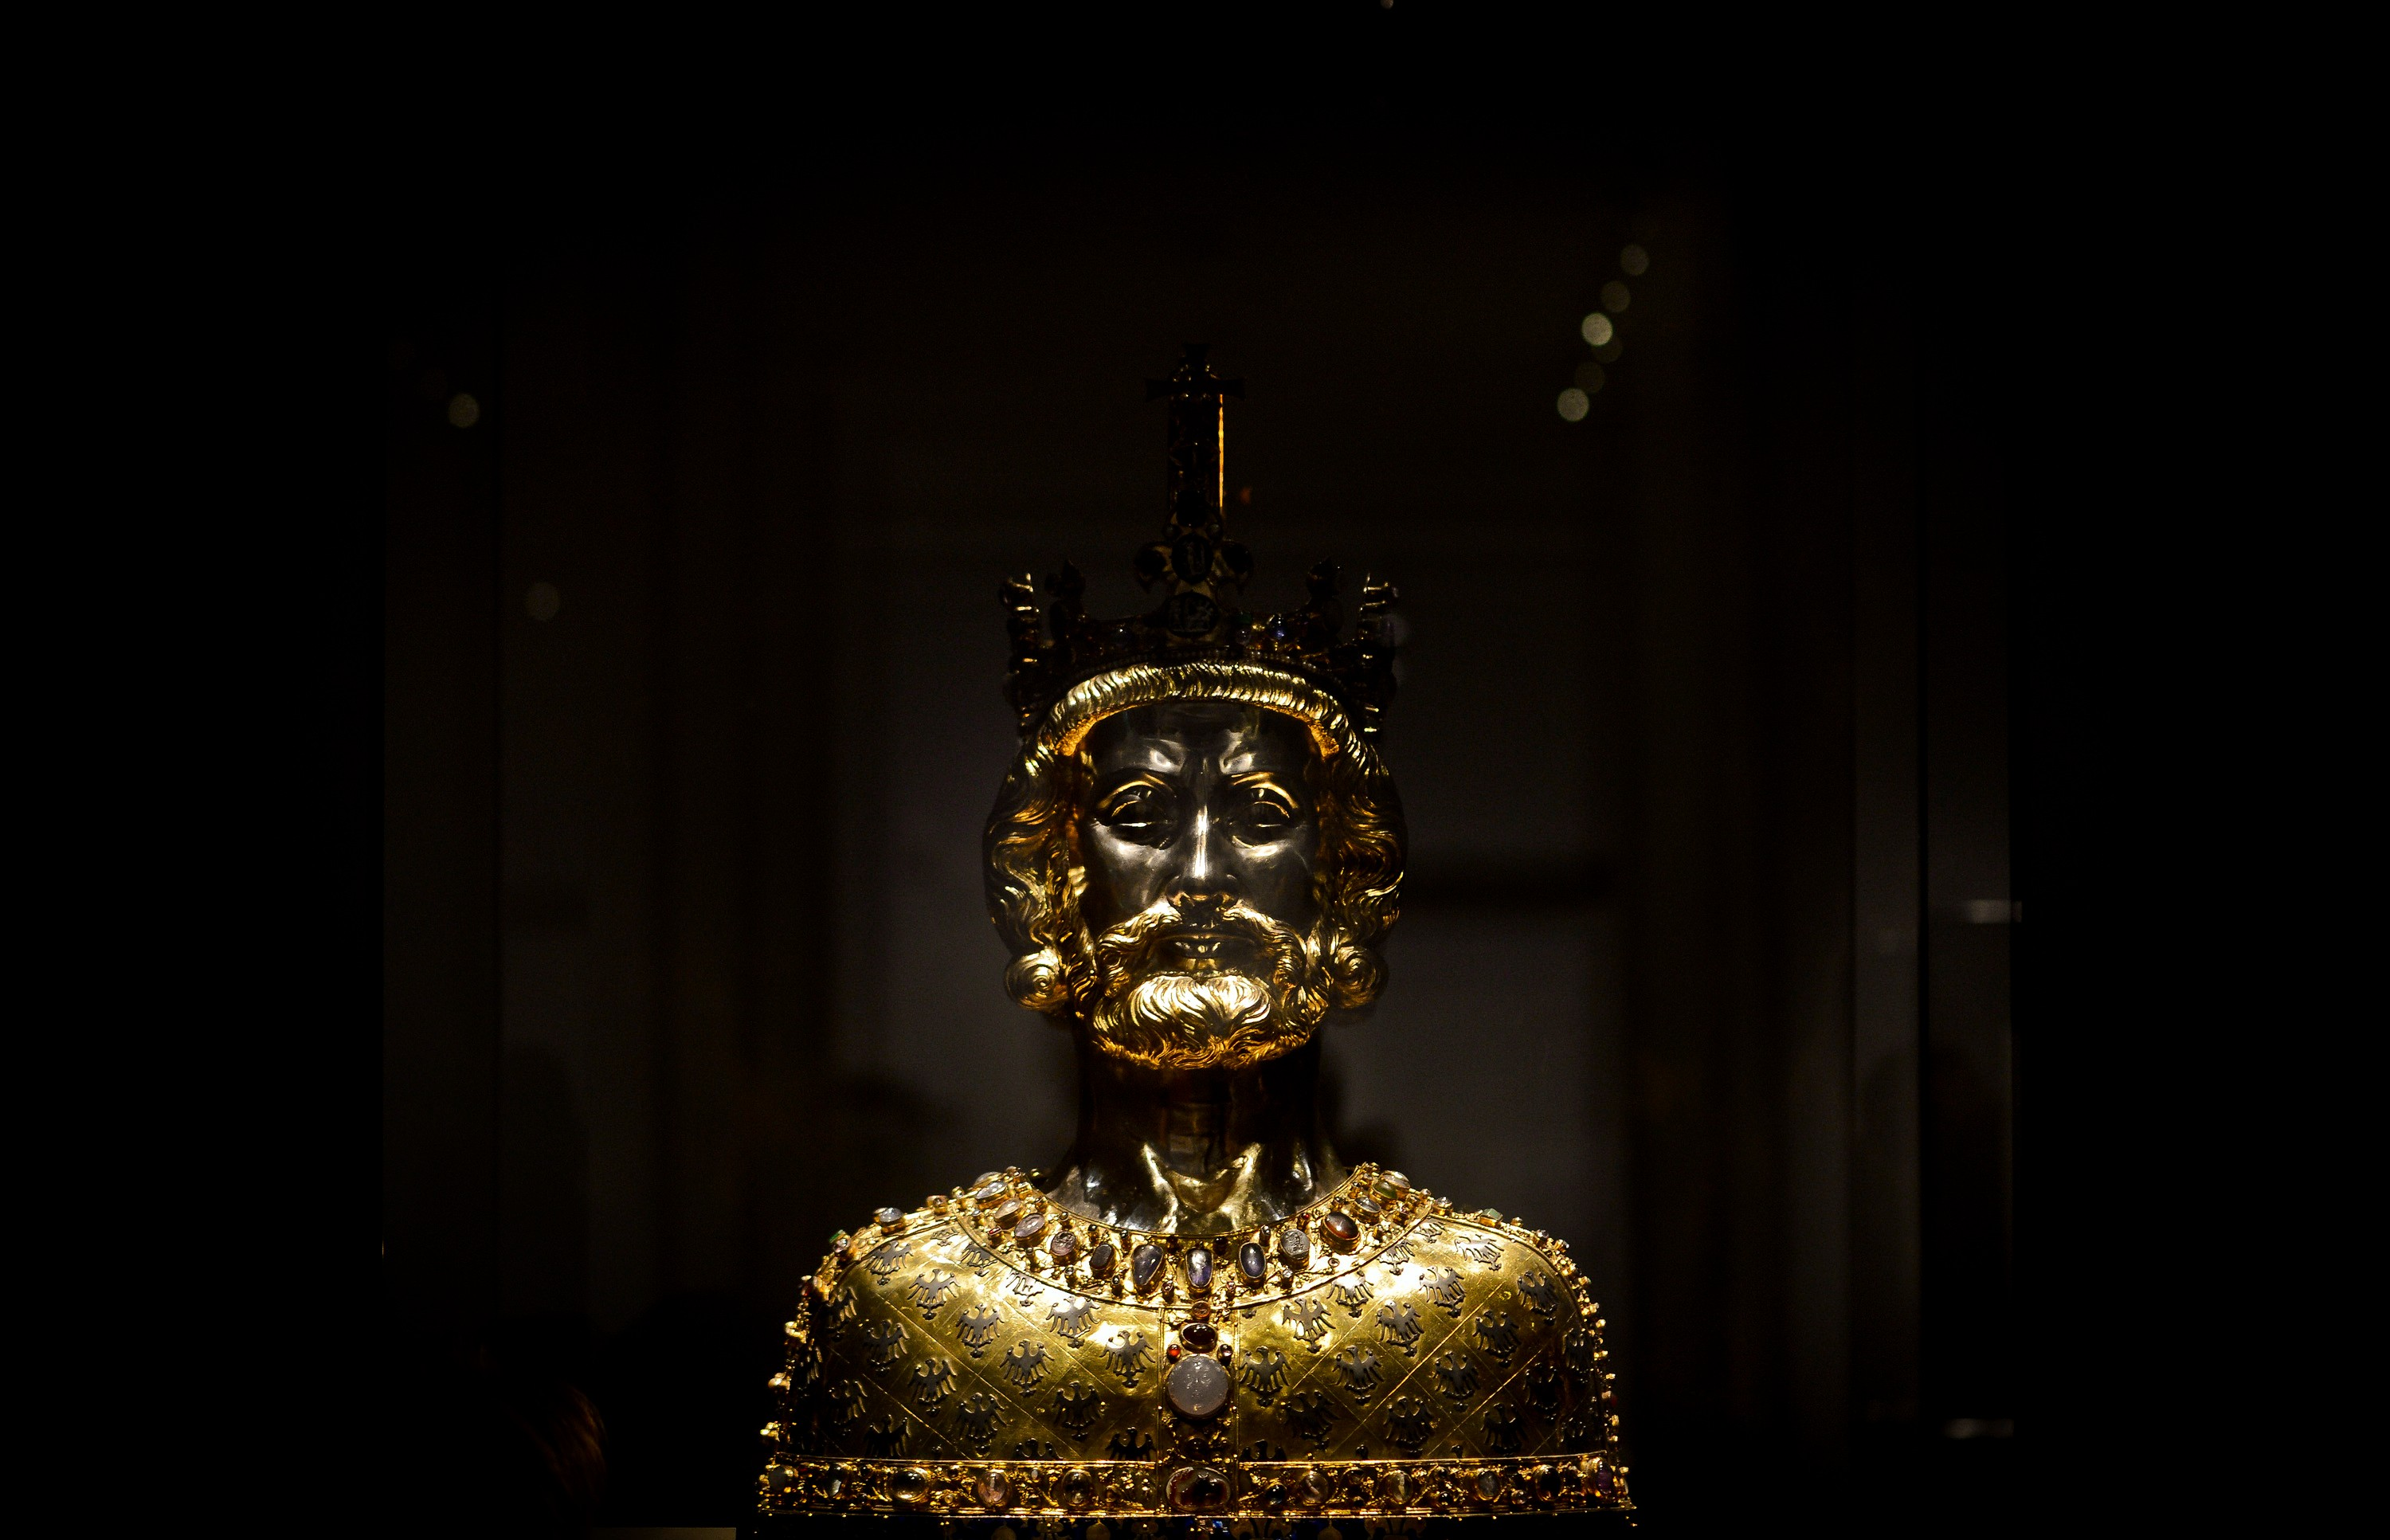 """A bust of Charlemagne at the exhibition """"Charlemagne: Power, Art, Treasures"""" (in German: """"Karl der Grosse: Macht, Kunst, Schaetze"""") during the press day on June 18, 2014 in Aachen, Germany. The three-part exhibition is among the biggest events this year commemorating the 1200th anniversary of Charlemagne's death. Charlemagne, also called Charles the Great, was the first pan-western European emperor since the collapse of the Roman Empire and ruled over territories that include modern-day France, Germany, Switzerland, Belgium, Holland and northern Italy.  (Photo by Sascha Schuermann/Getty Images)"""